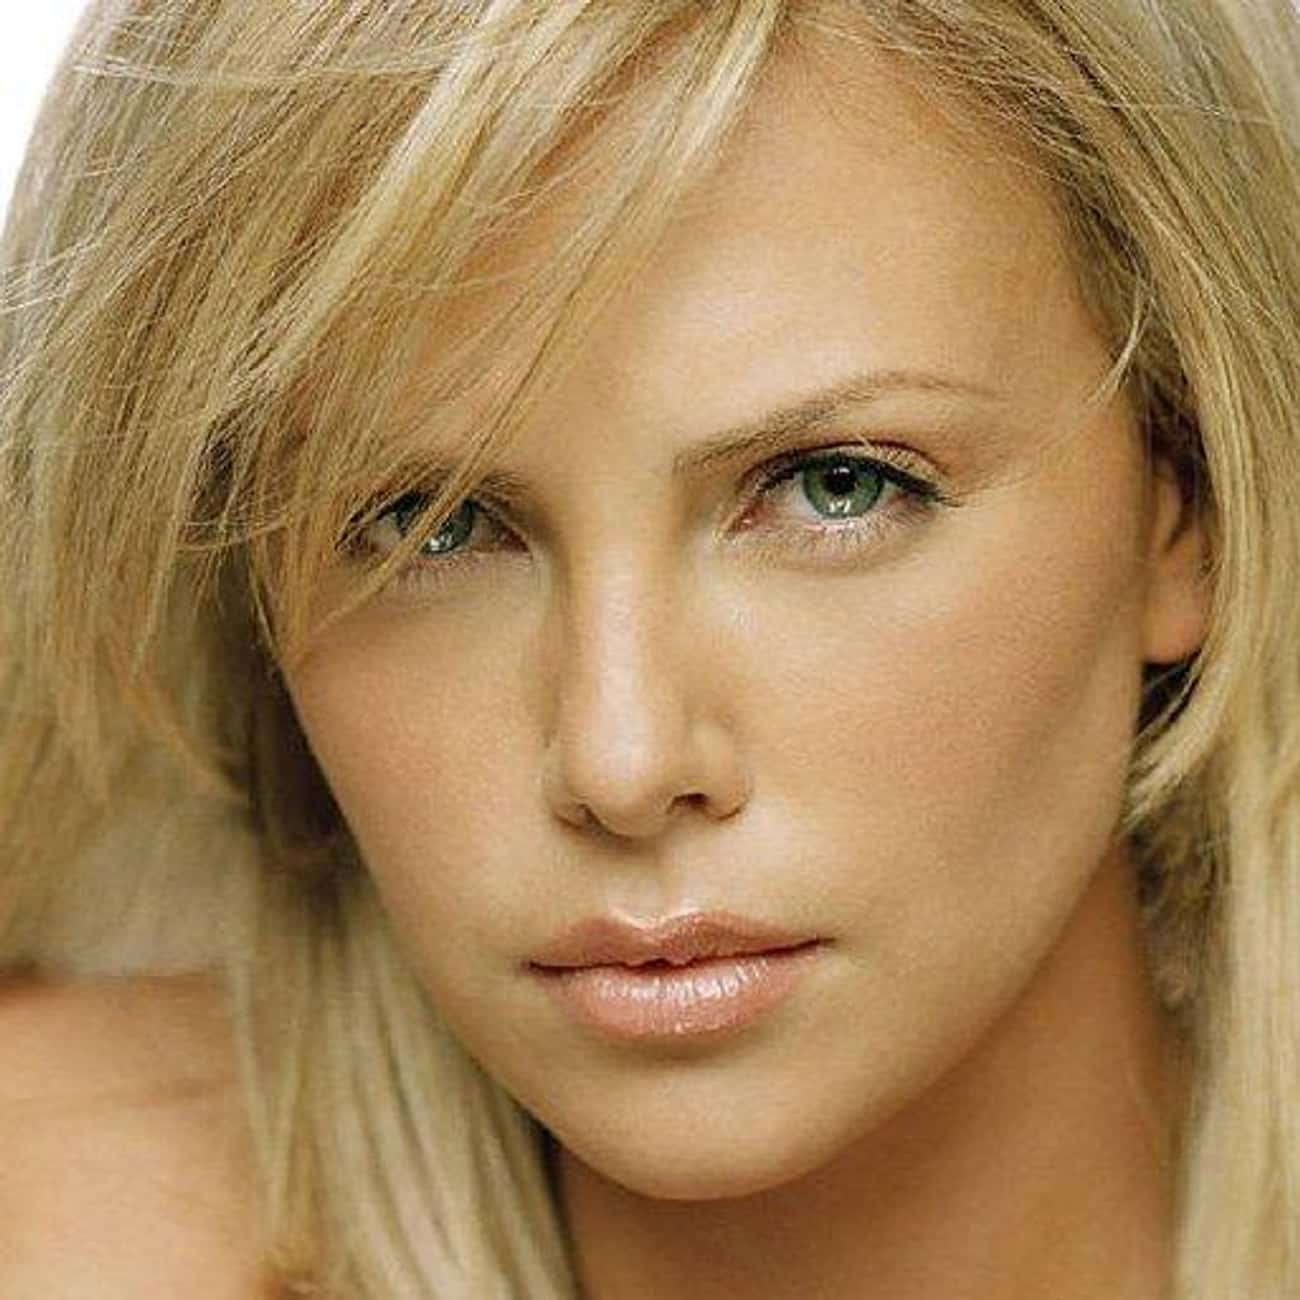 Charlize Theron is listed (or ranked) 3 on the list Celebrities Who Were Abused